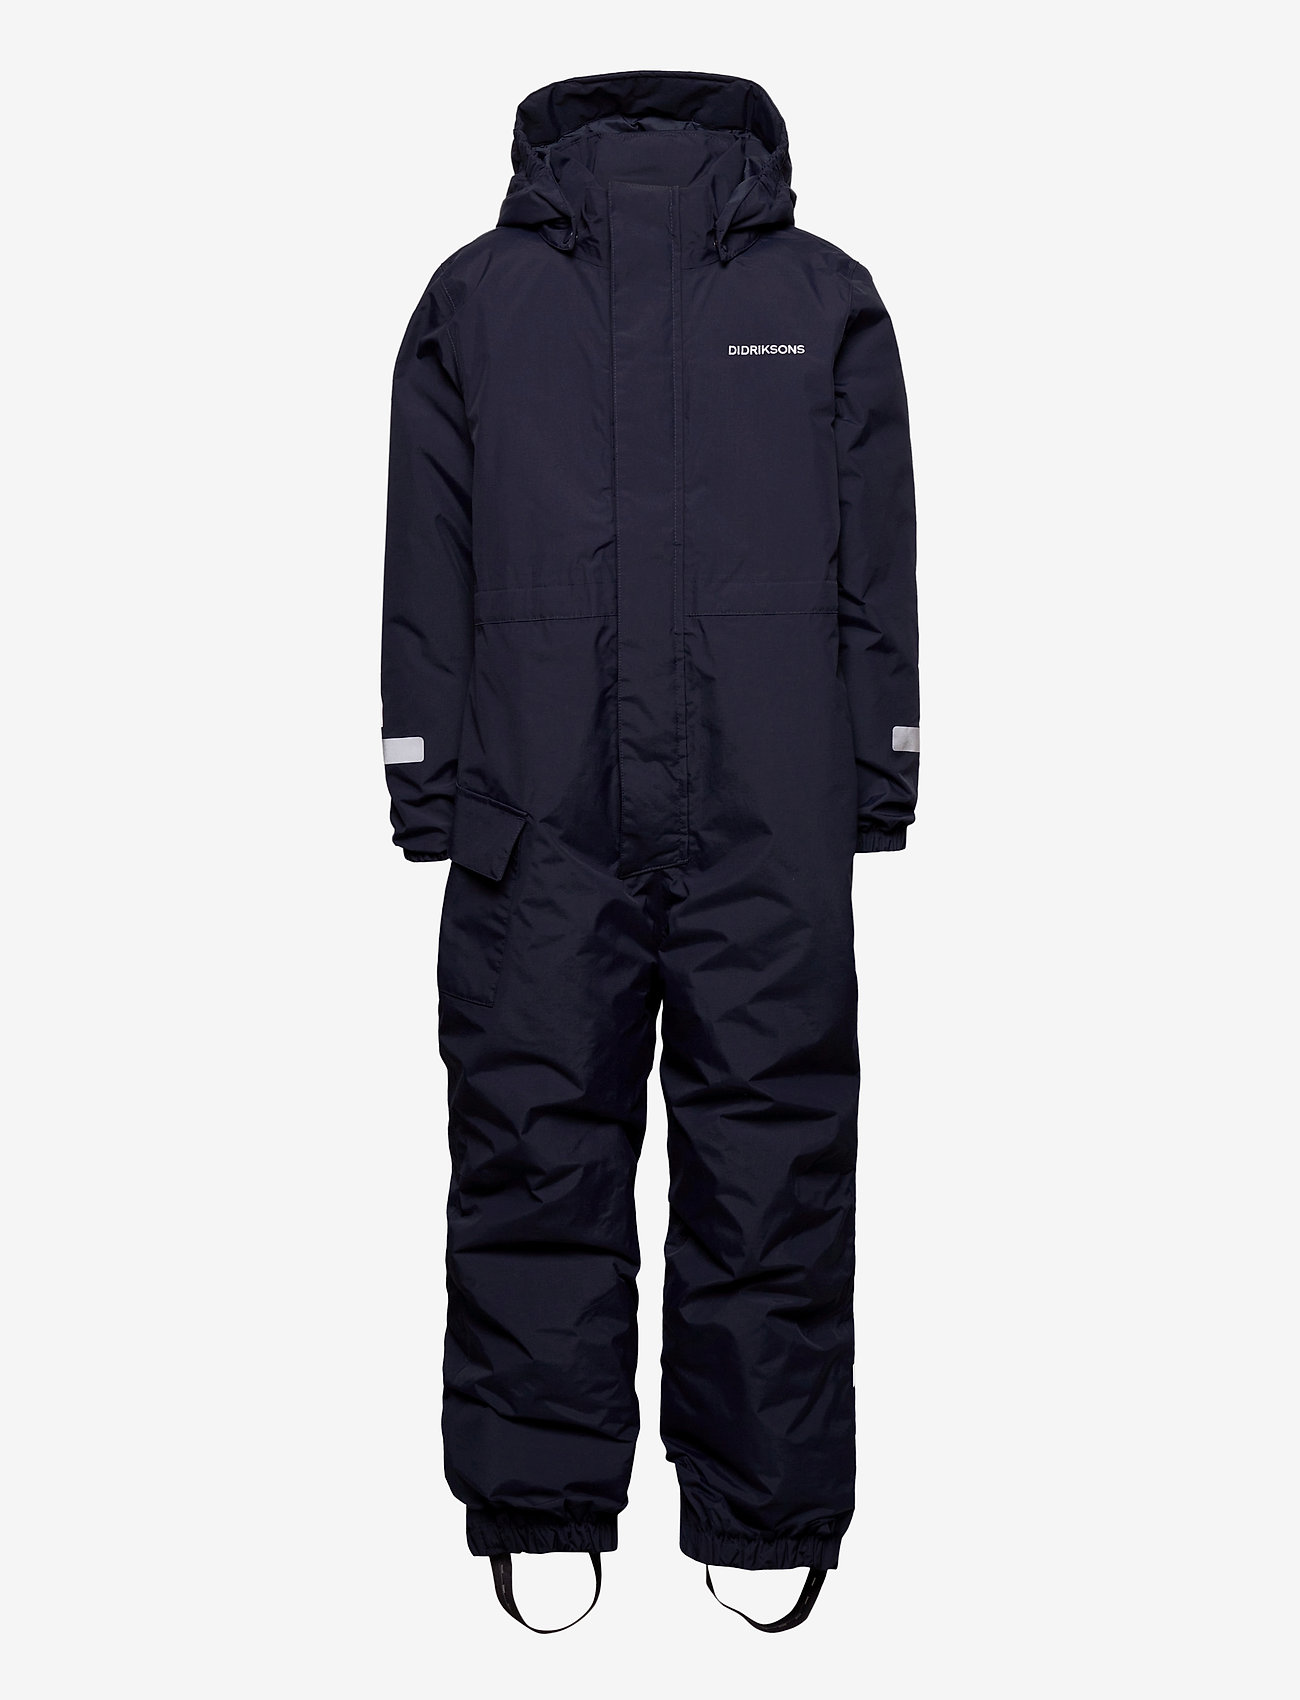 Didriksons - HAILEY KIDS COVERALL - snowsuit - navy - 1